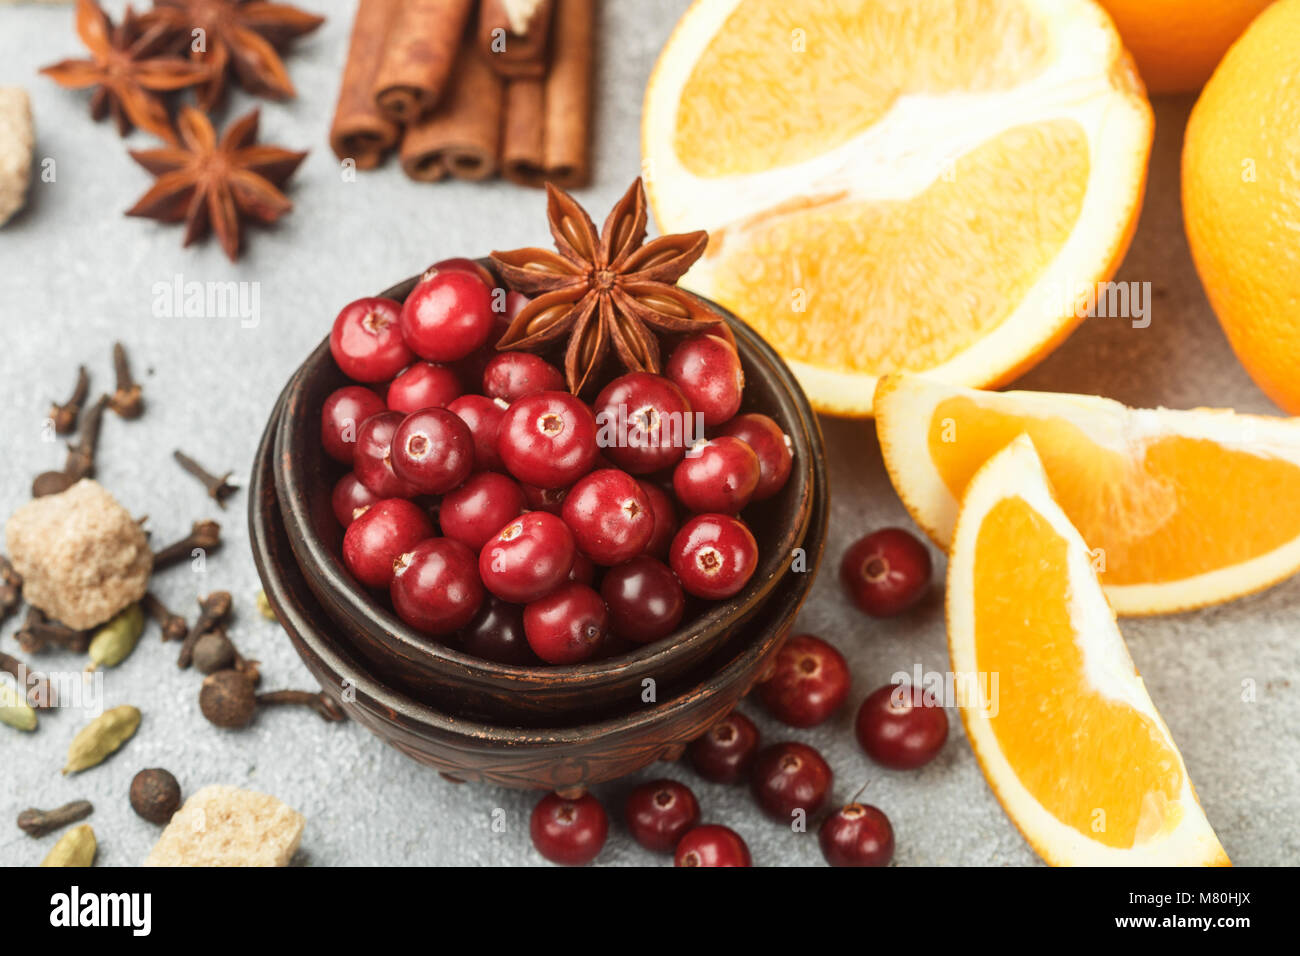 Ingredients for cooking traditional spicy winter drinks - cranberry, citrus, cinnamon, cardamom, star anise, cloves, - Stock Image